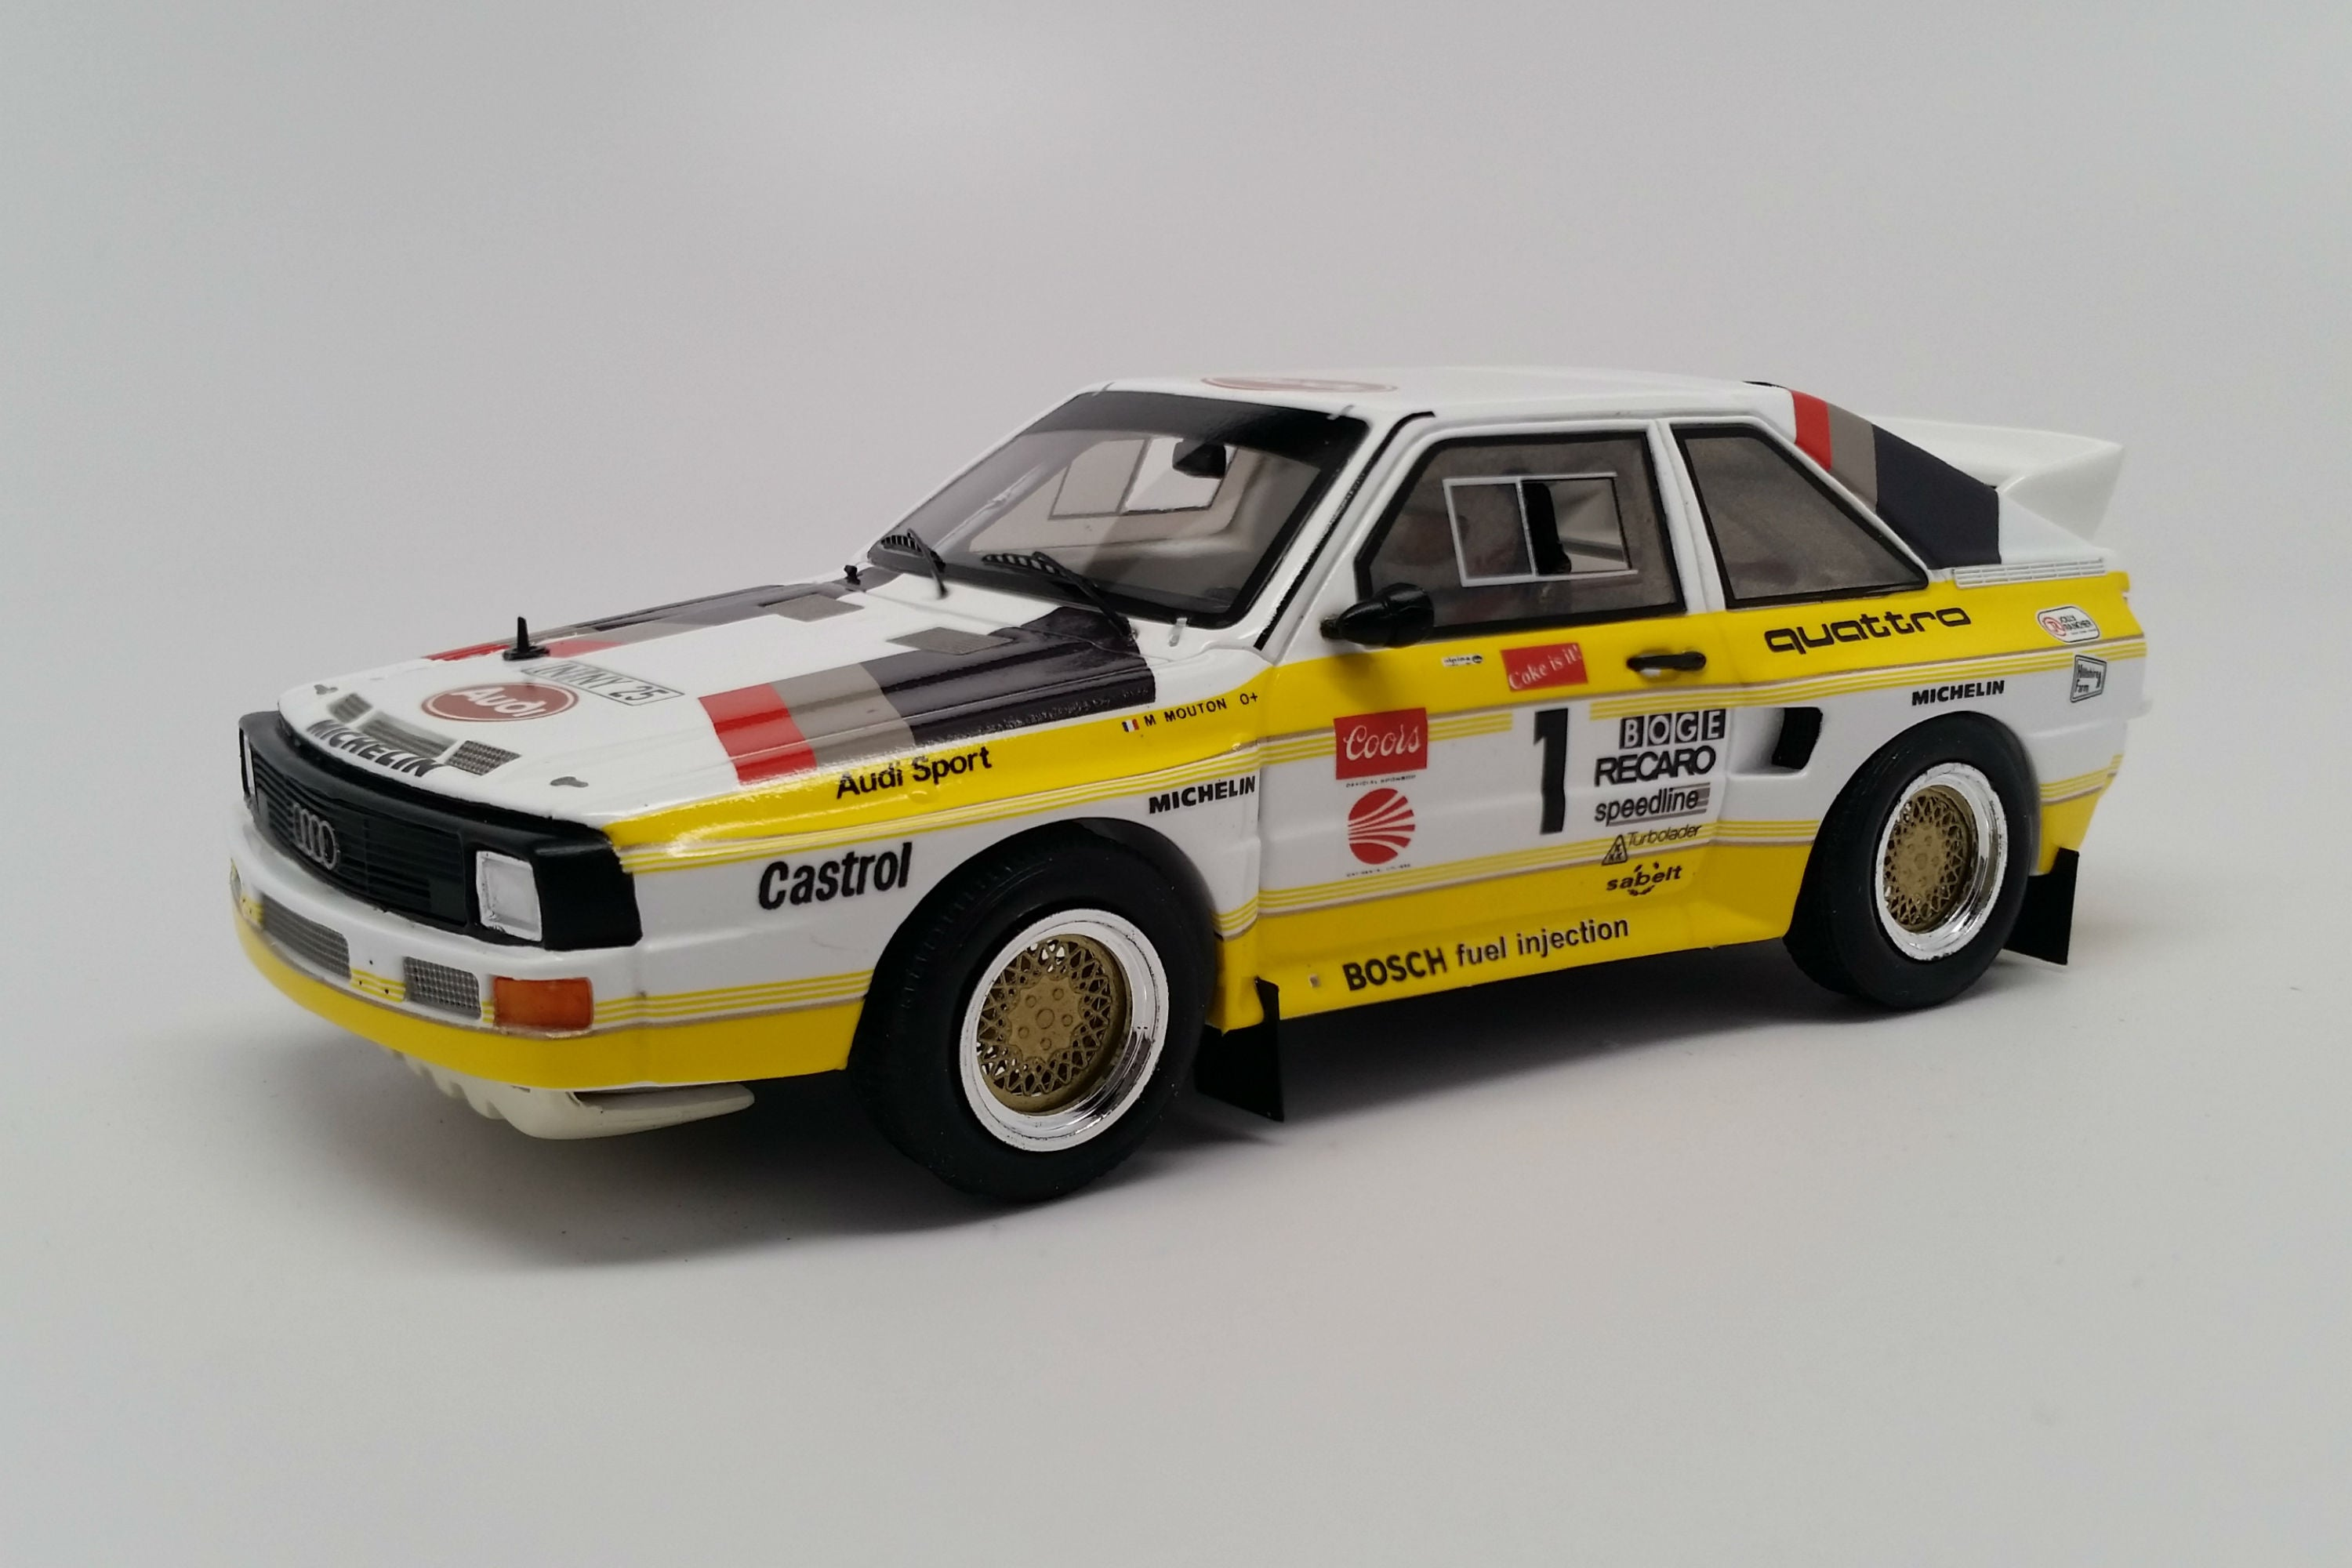 Audi Sport Quattro S1 (1985 Pikes Peak) | 1:43 Scale Model Car by Spark| Front Quarter